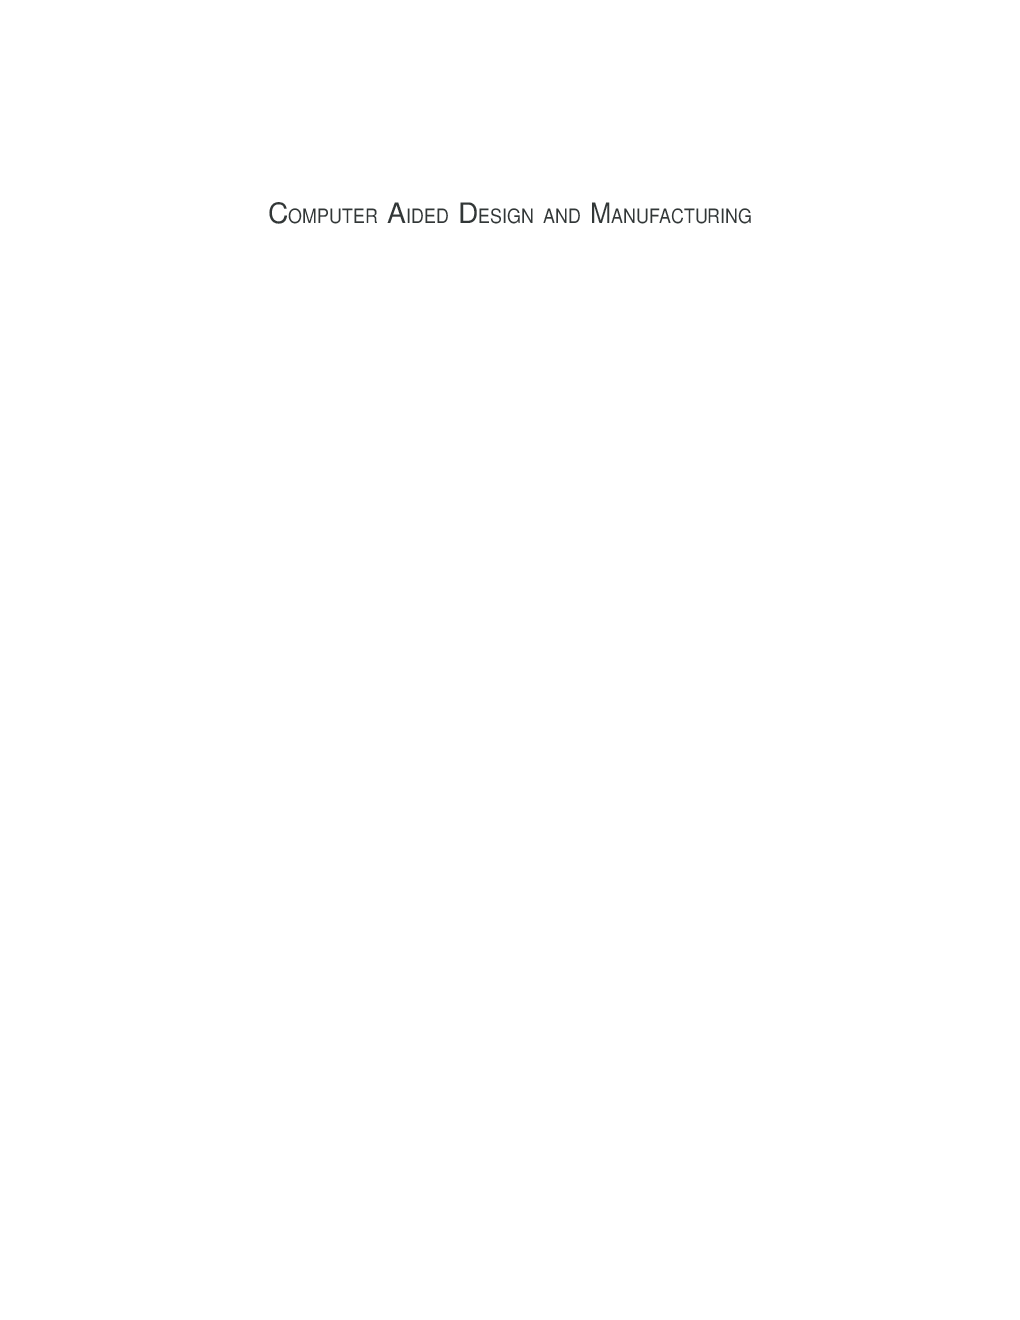 Computer Aided Design And Manufacturing (PHI) - Page 2